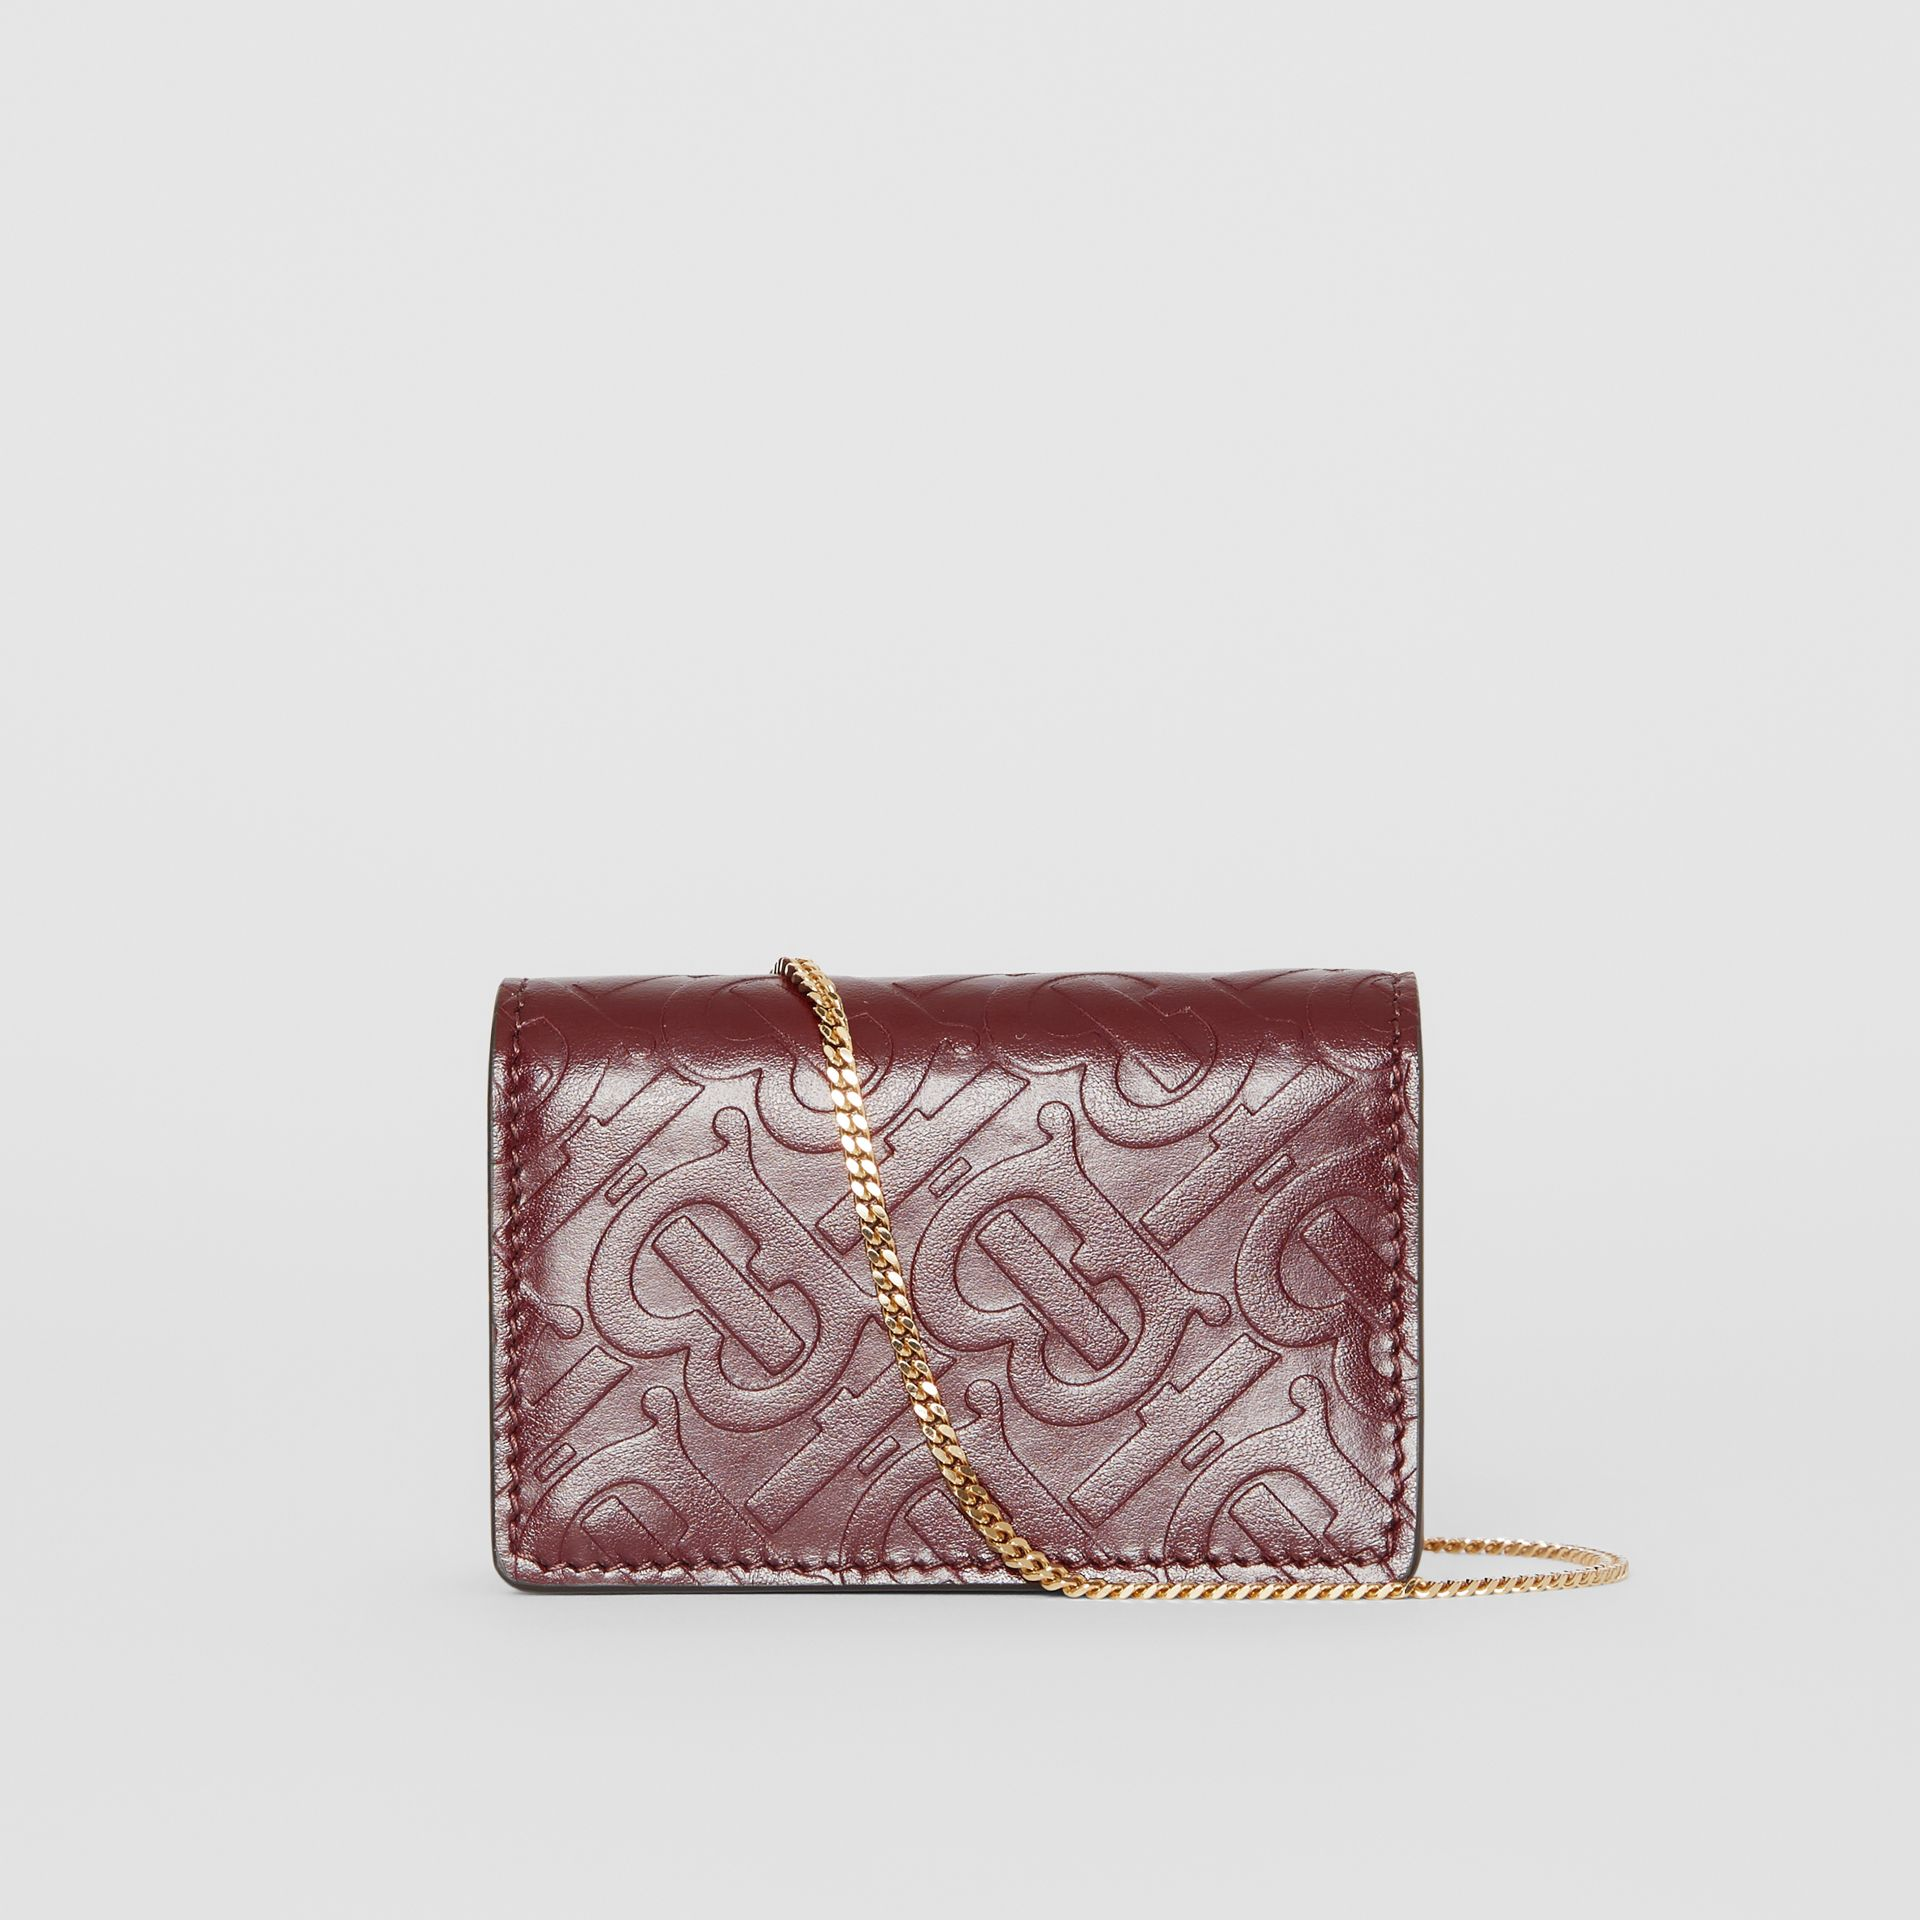 Monogram Leather Card Case with Detachable Strap in Oxblood | Burberry Singapore - gallery image 7